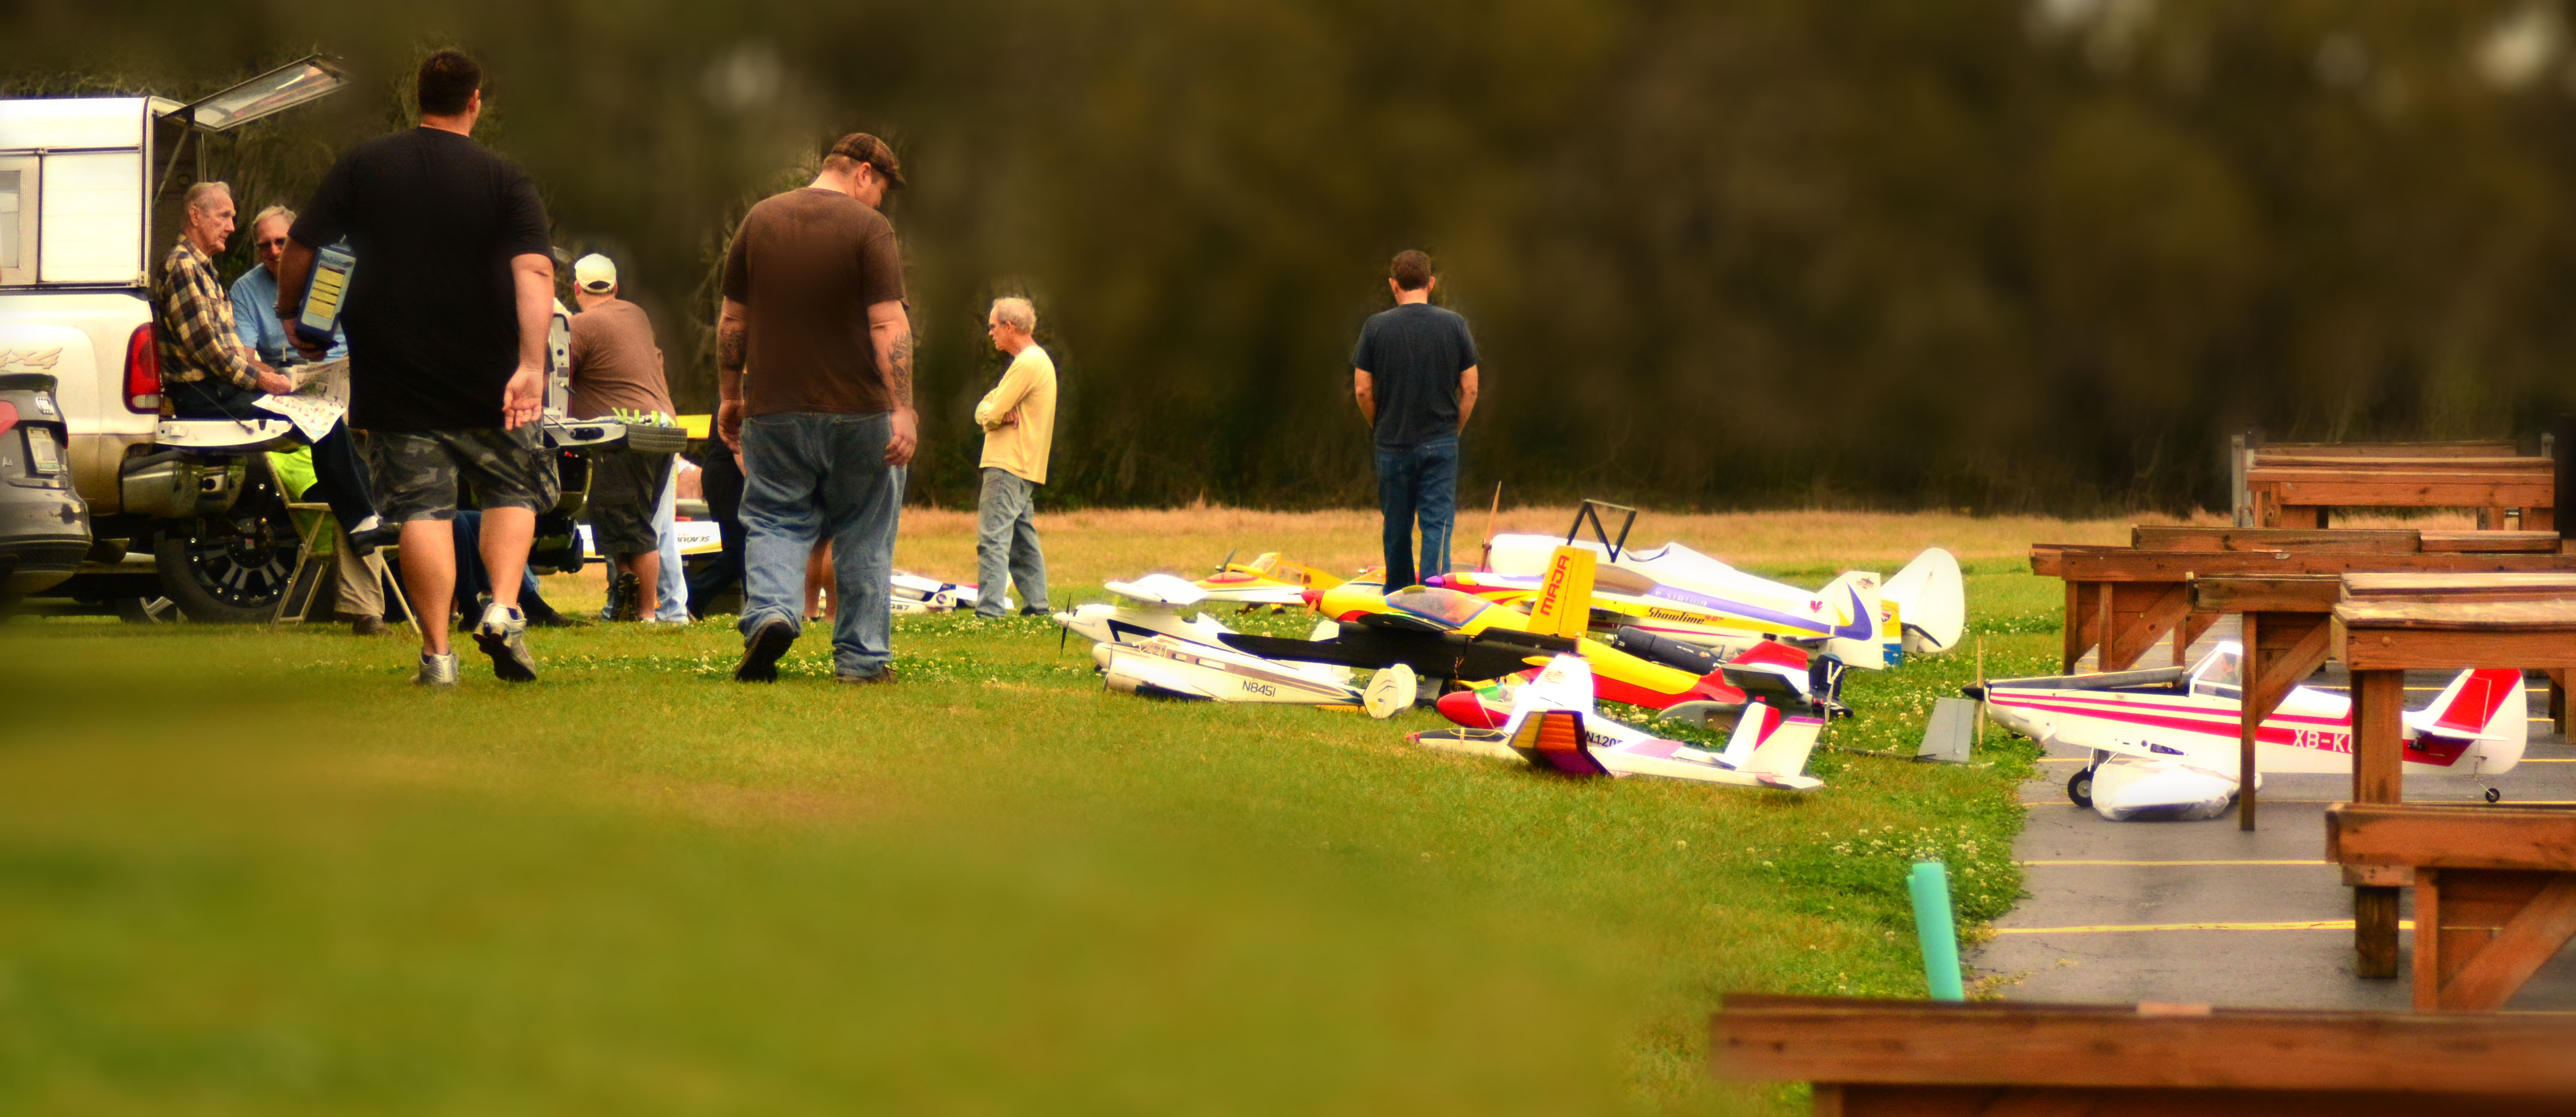 Tampa RC Aircraft Club Flea Market Fun